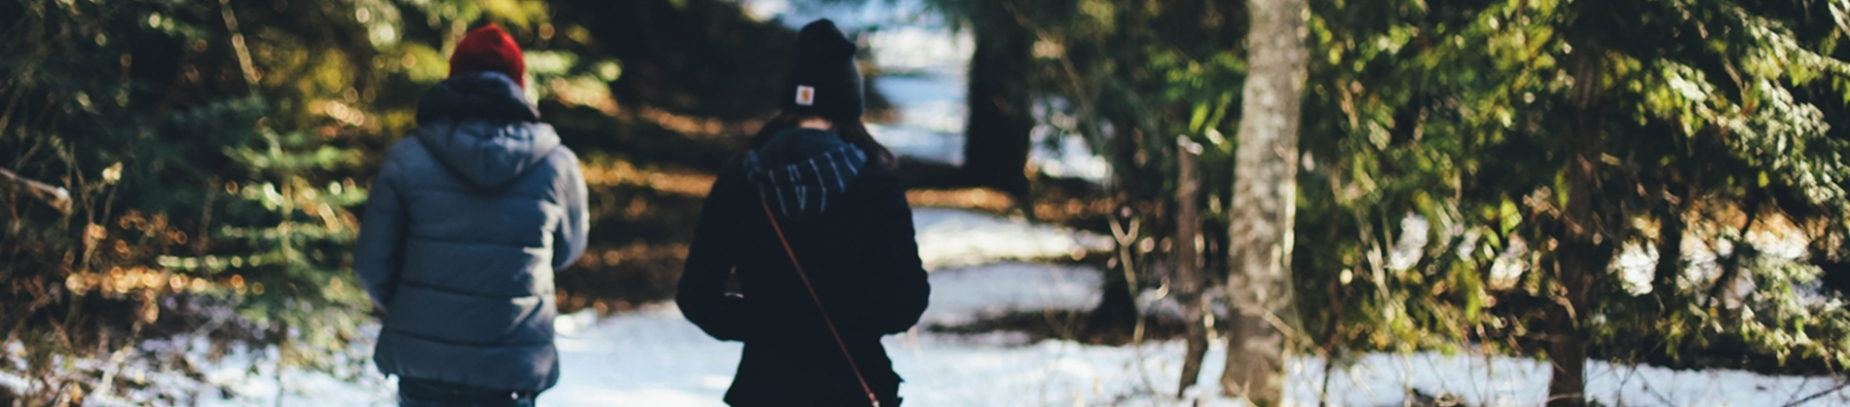 Two friends walking through a snowy forest